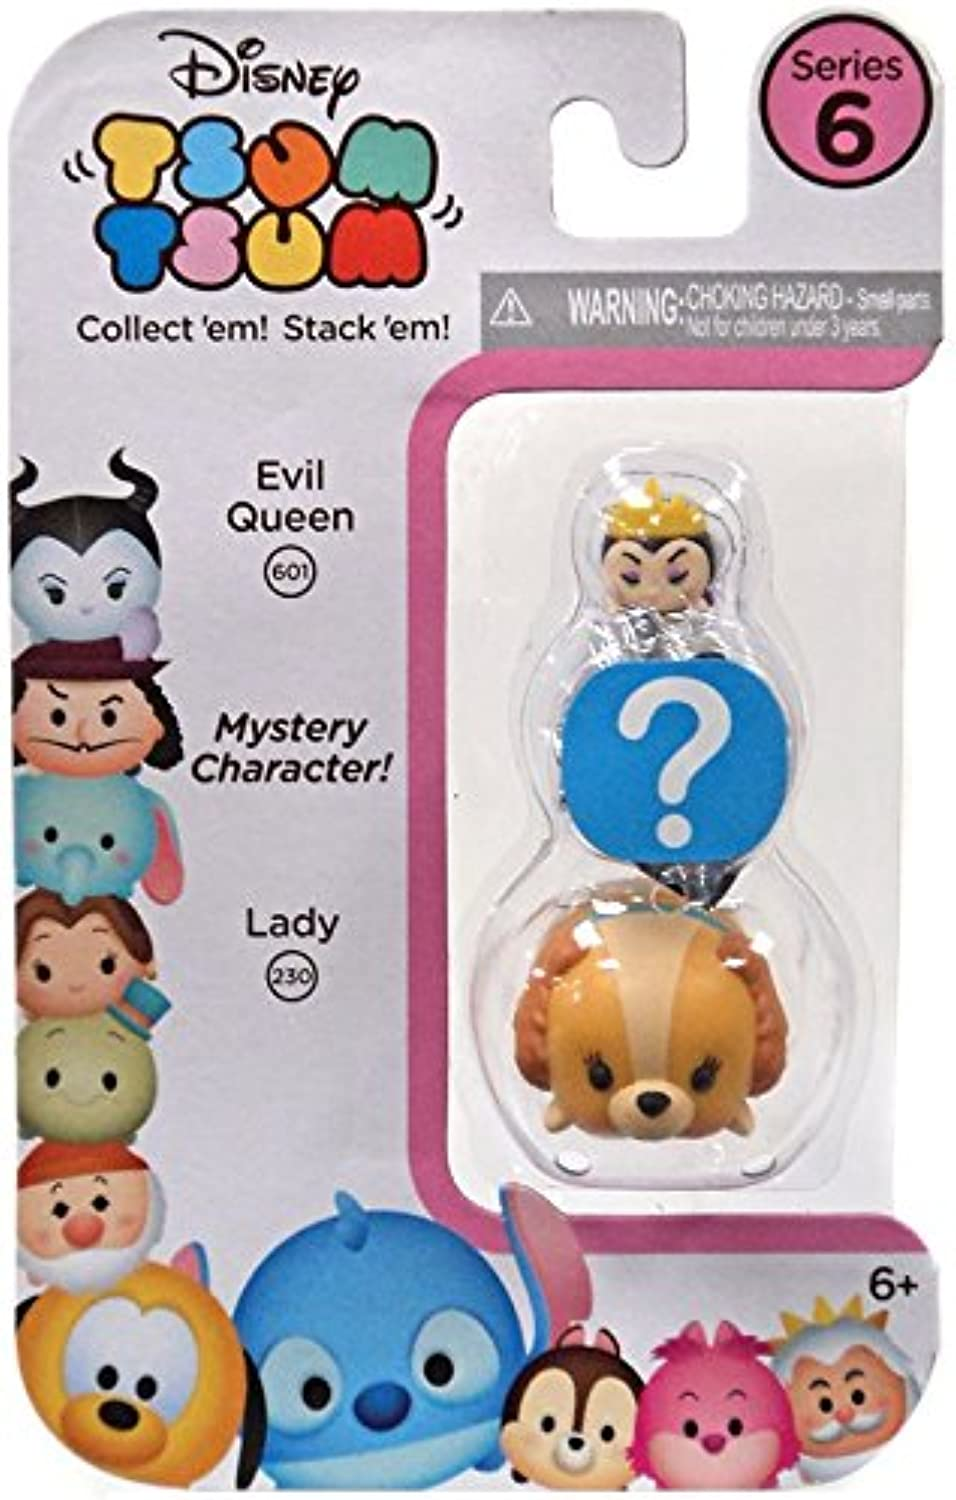 Disney Tsum Tsum Series 6  3Pack Figures  Evil Queen Mystery Lady